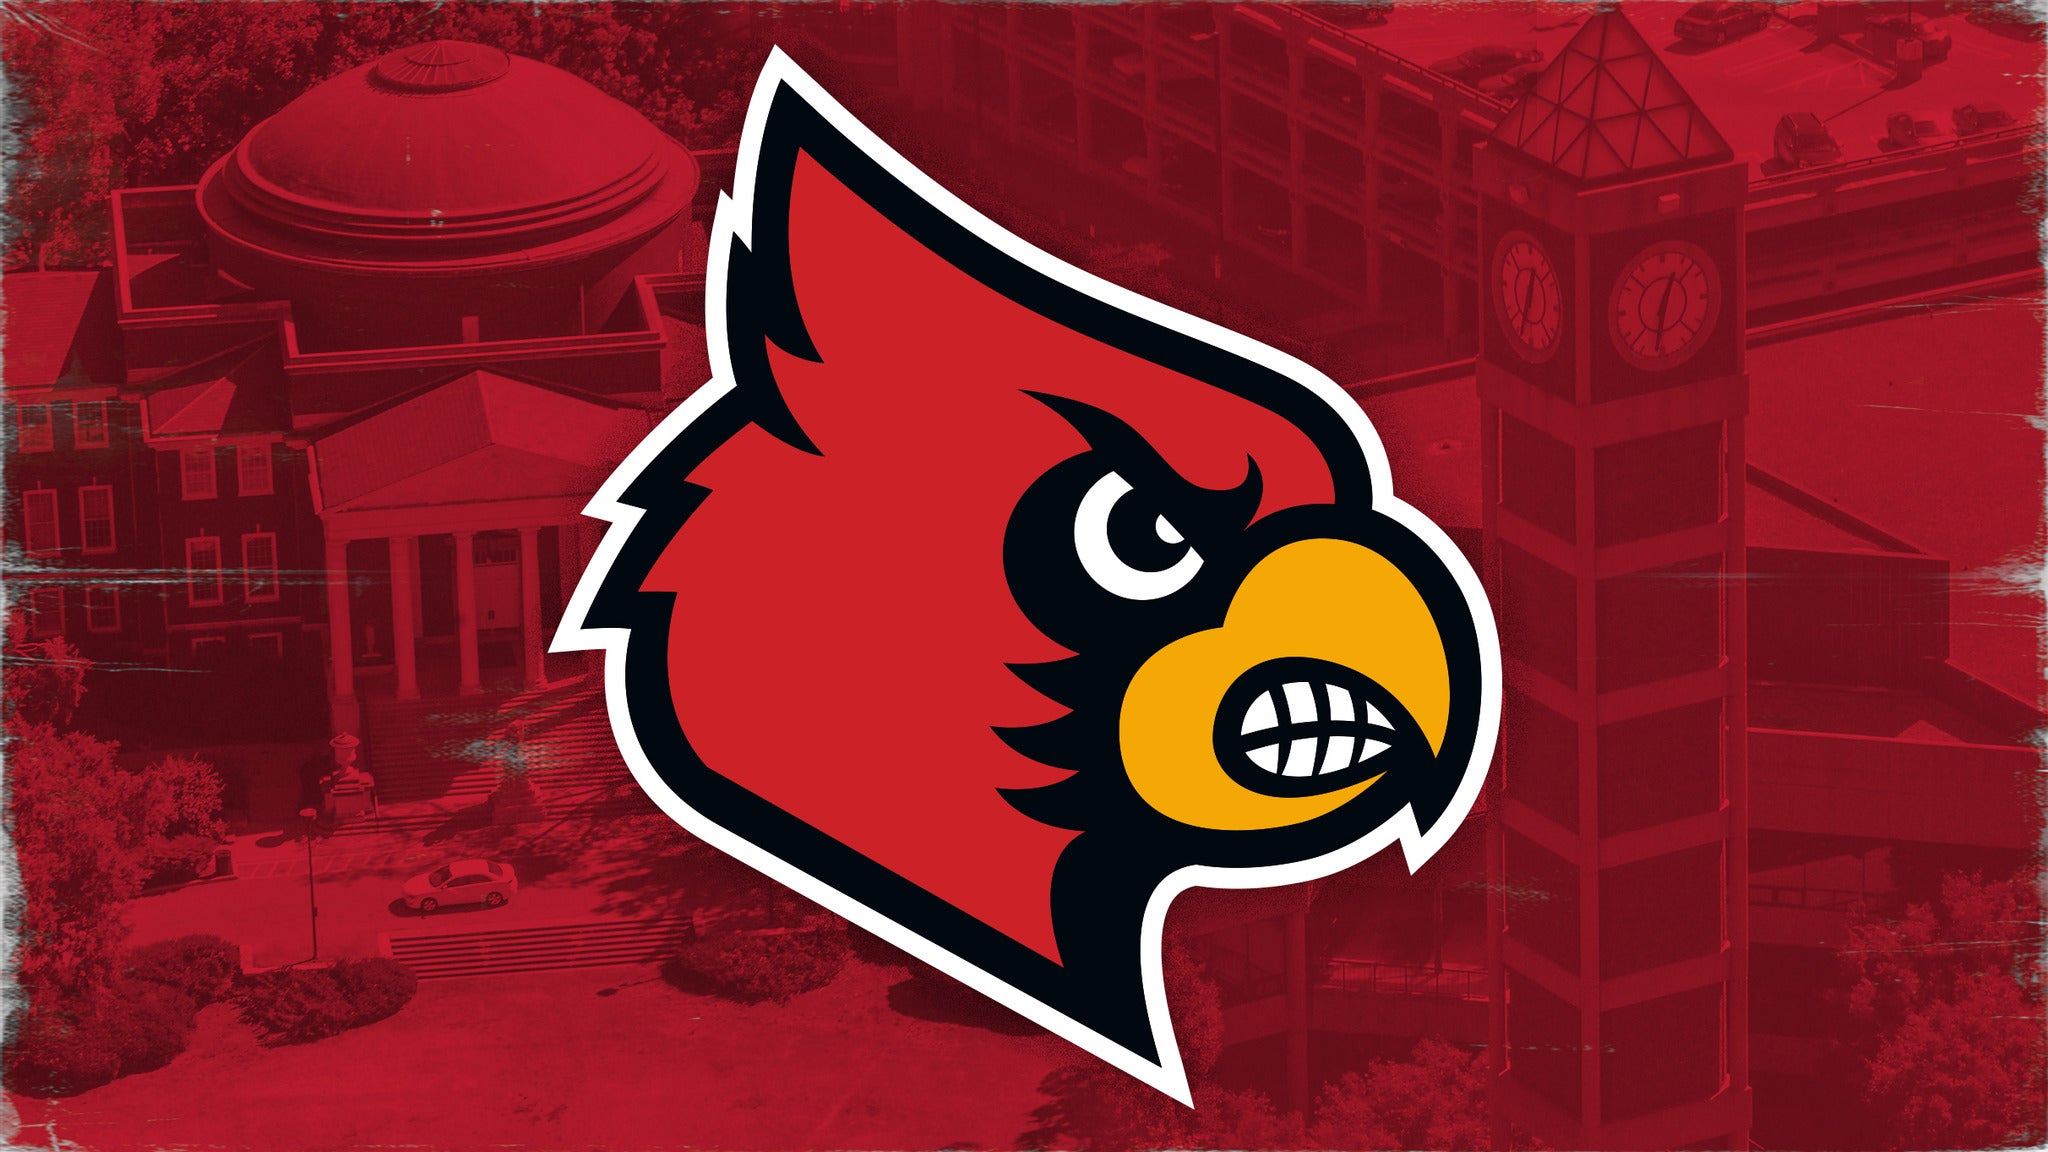 Louisville Cardinals Womens Basketball vs. University of Virginia Cavaliers Womens Basketball